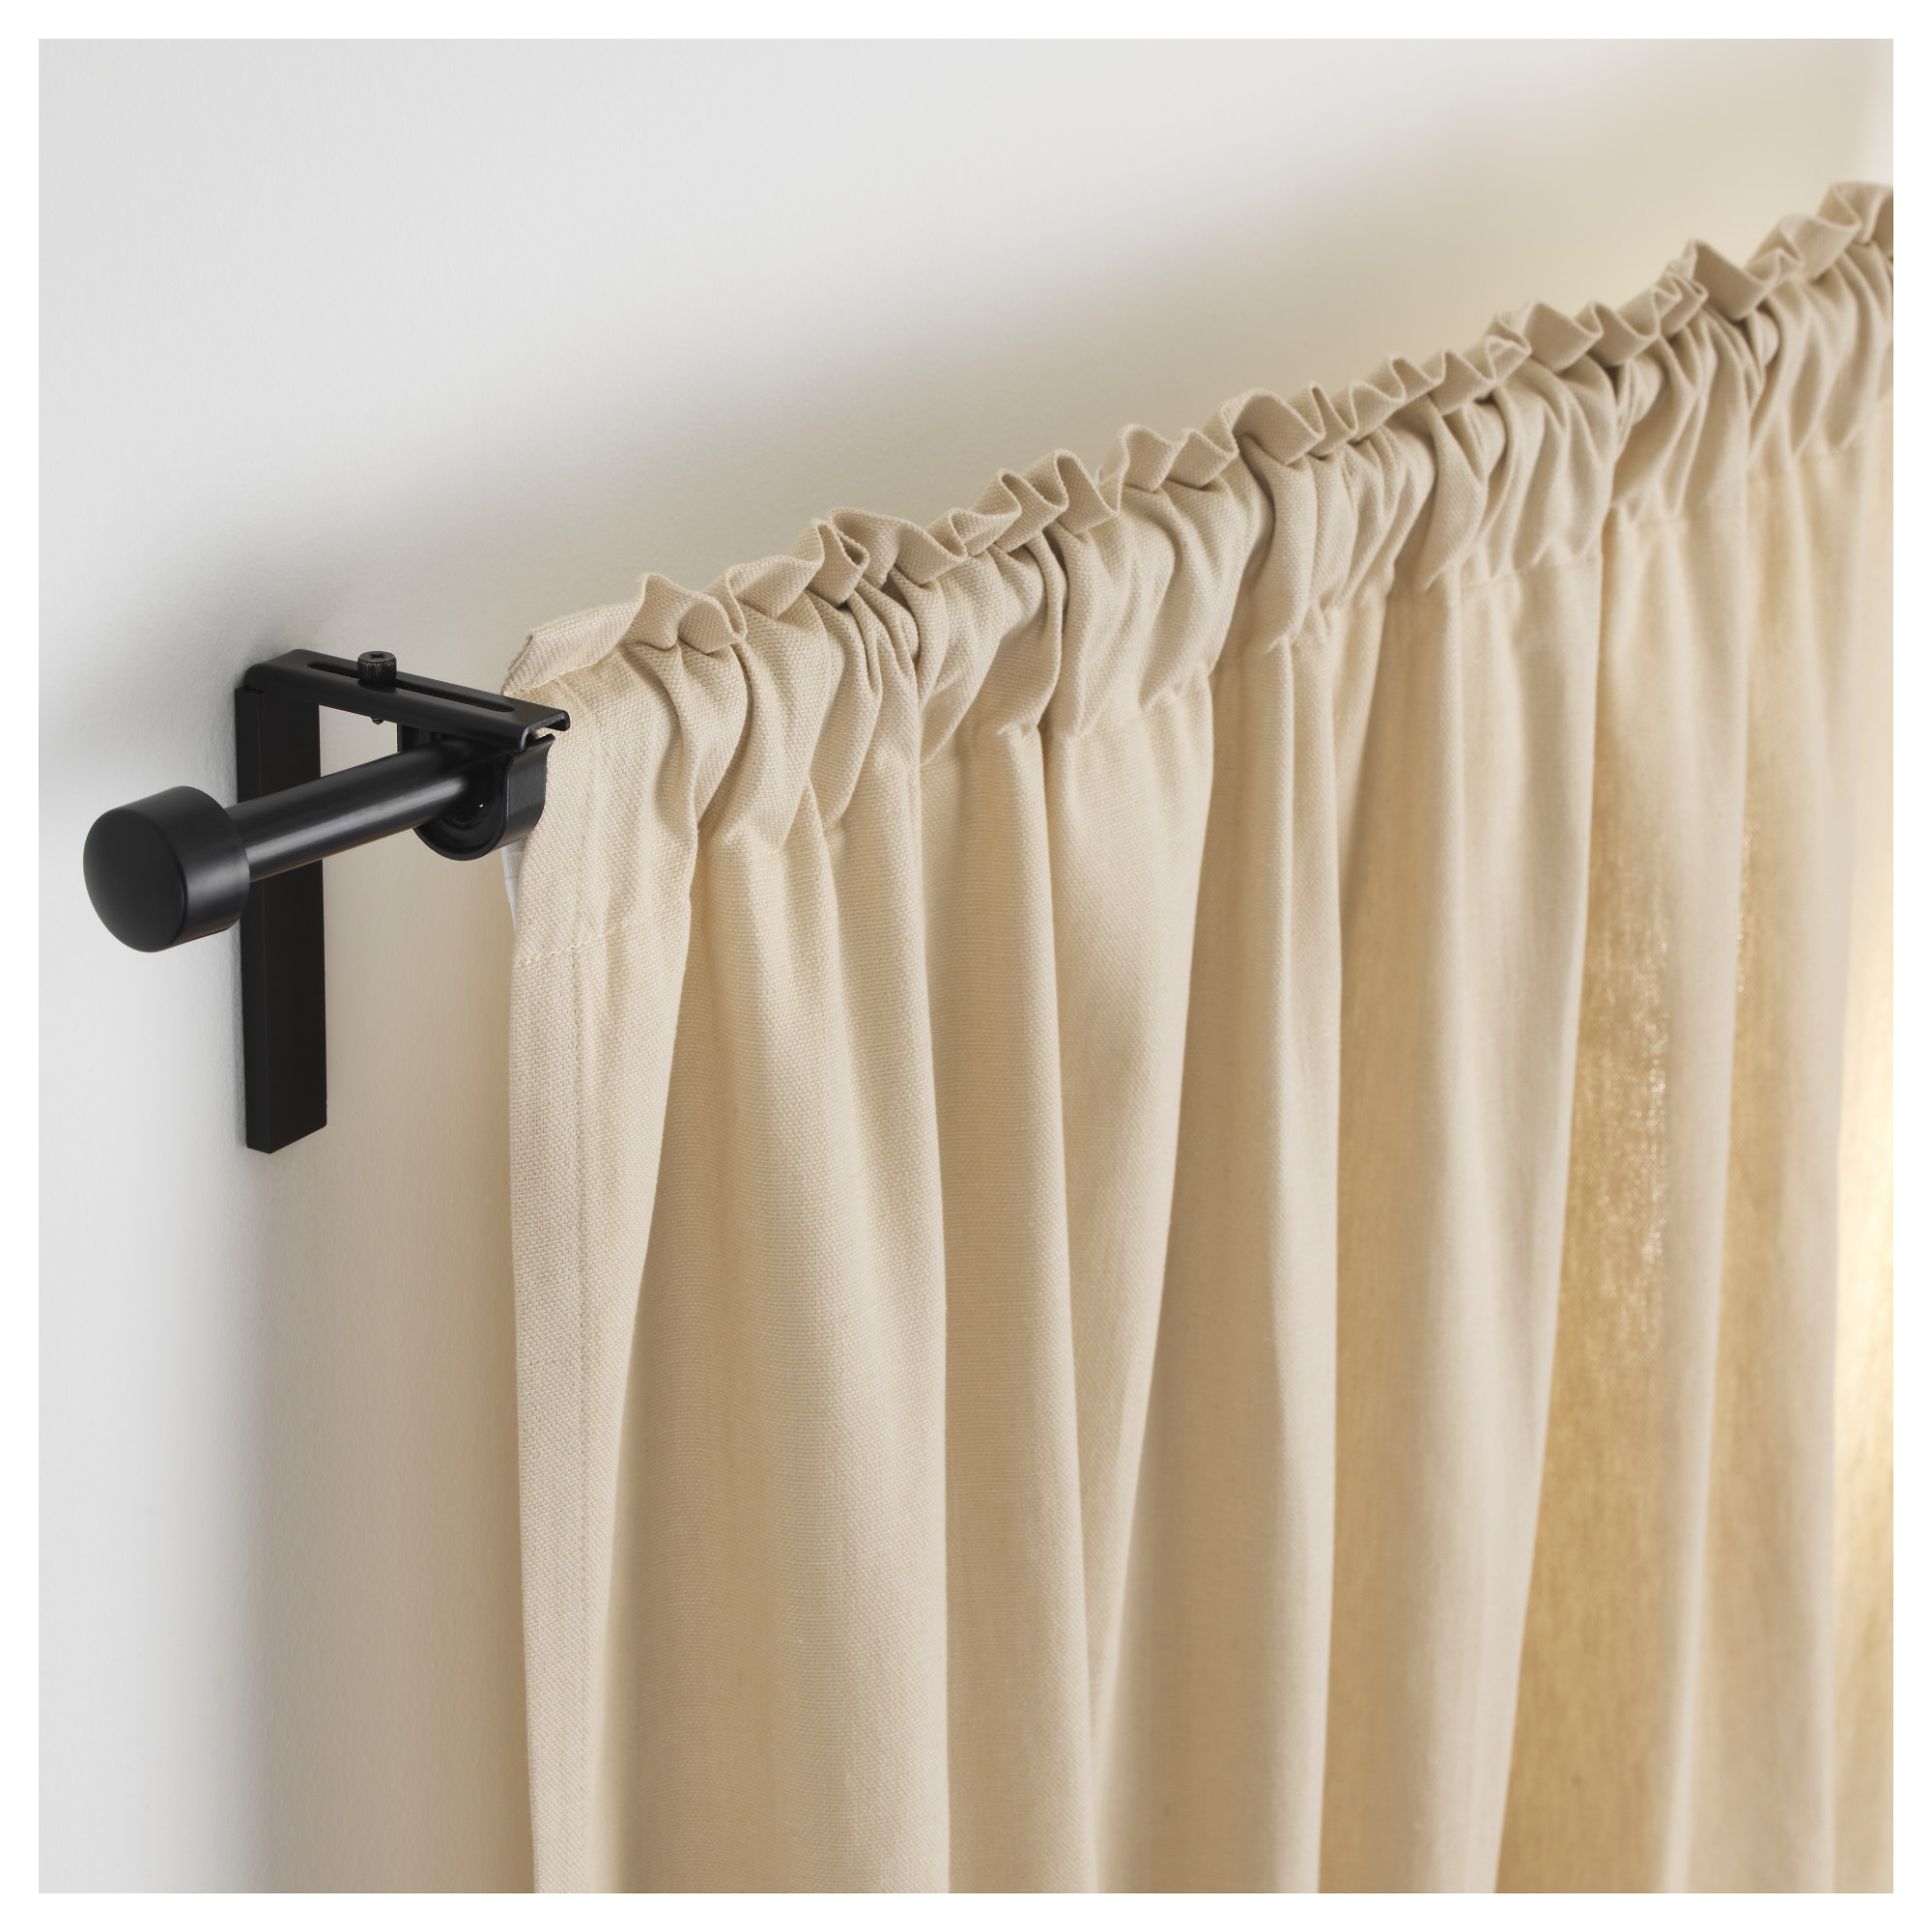 RÄCKA Curtain Rod Combination   IKEA